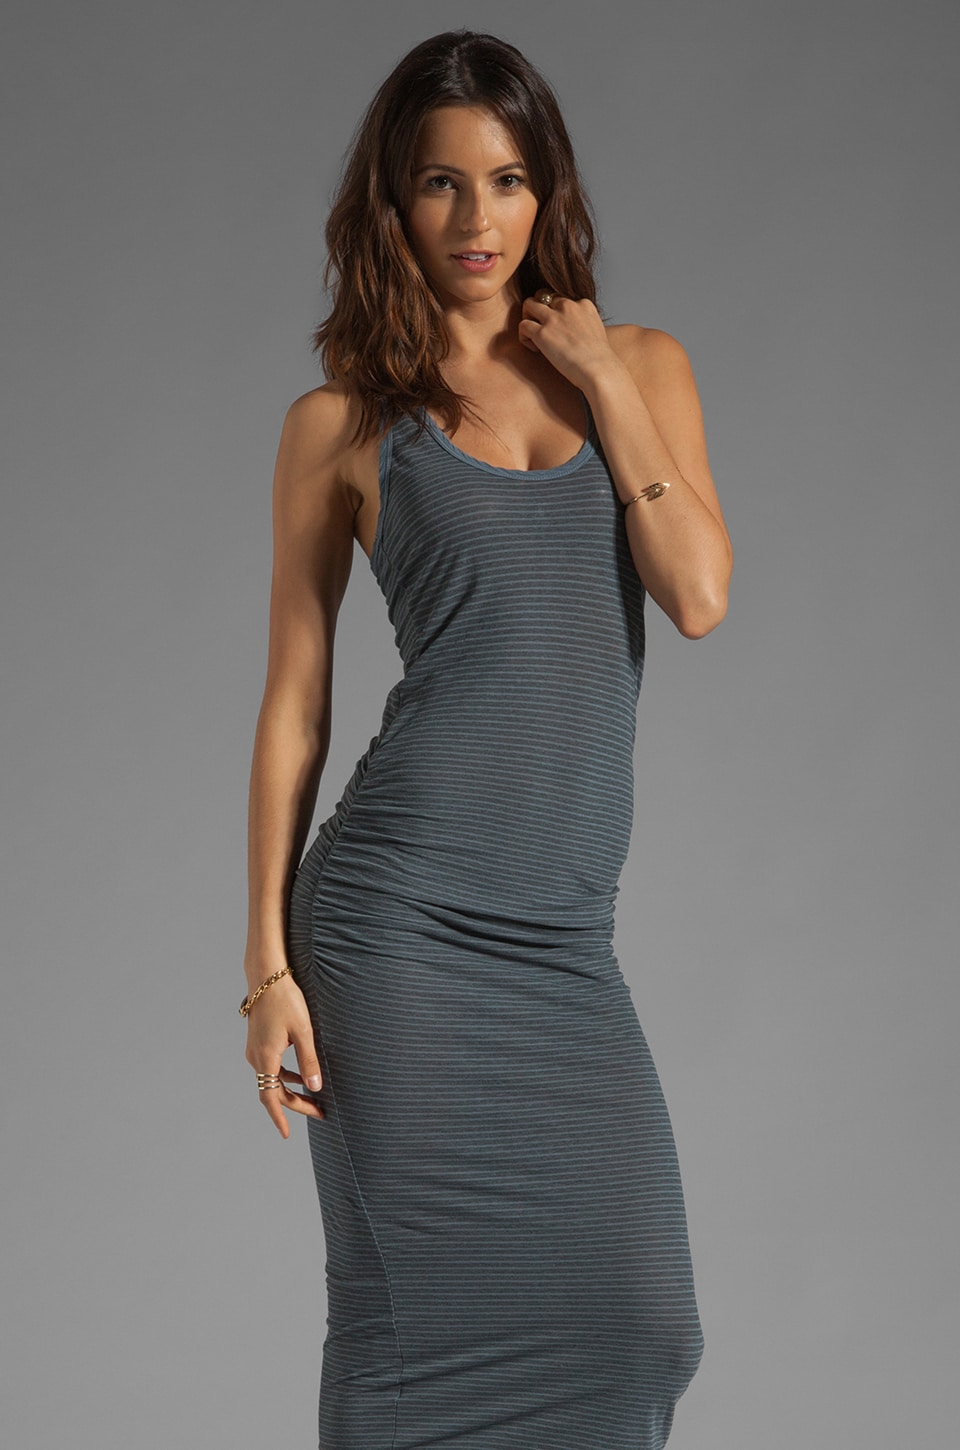 James Perse Stripe Tank Dress in Heather Grey/Tempest